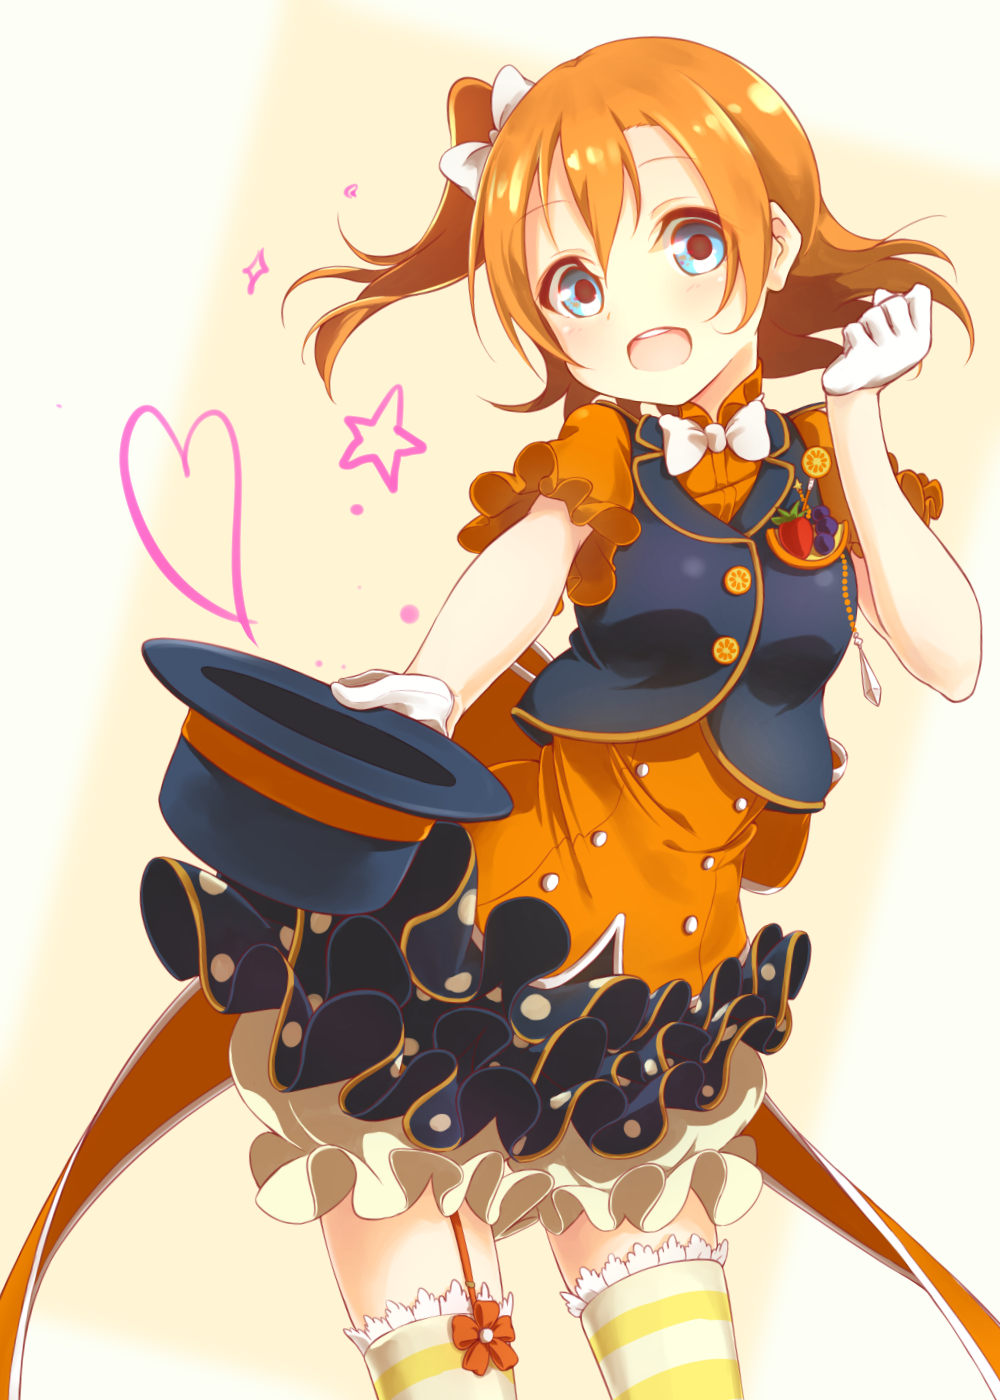 Wallpaper Love Live Tumblr : Kousaka Honoka (Honoka Kousaka) - Love Live! - Image ...